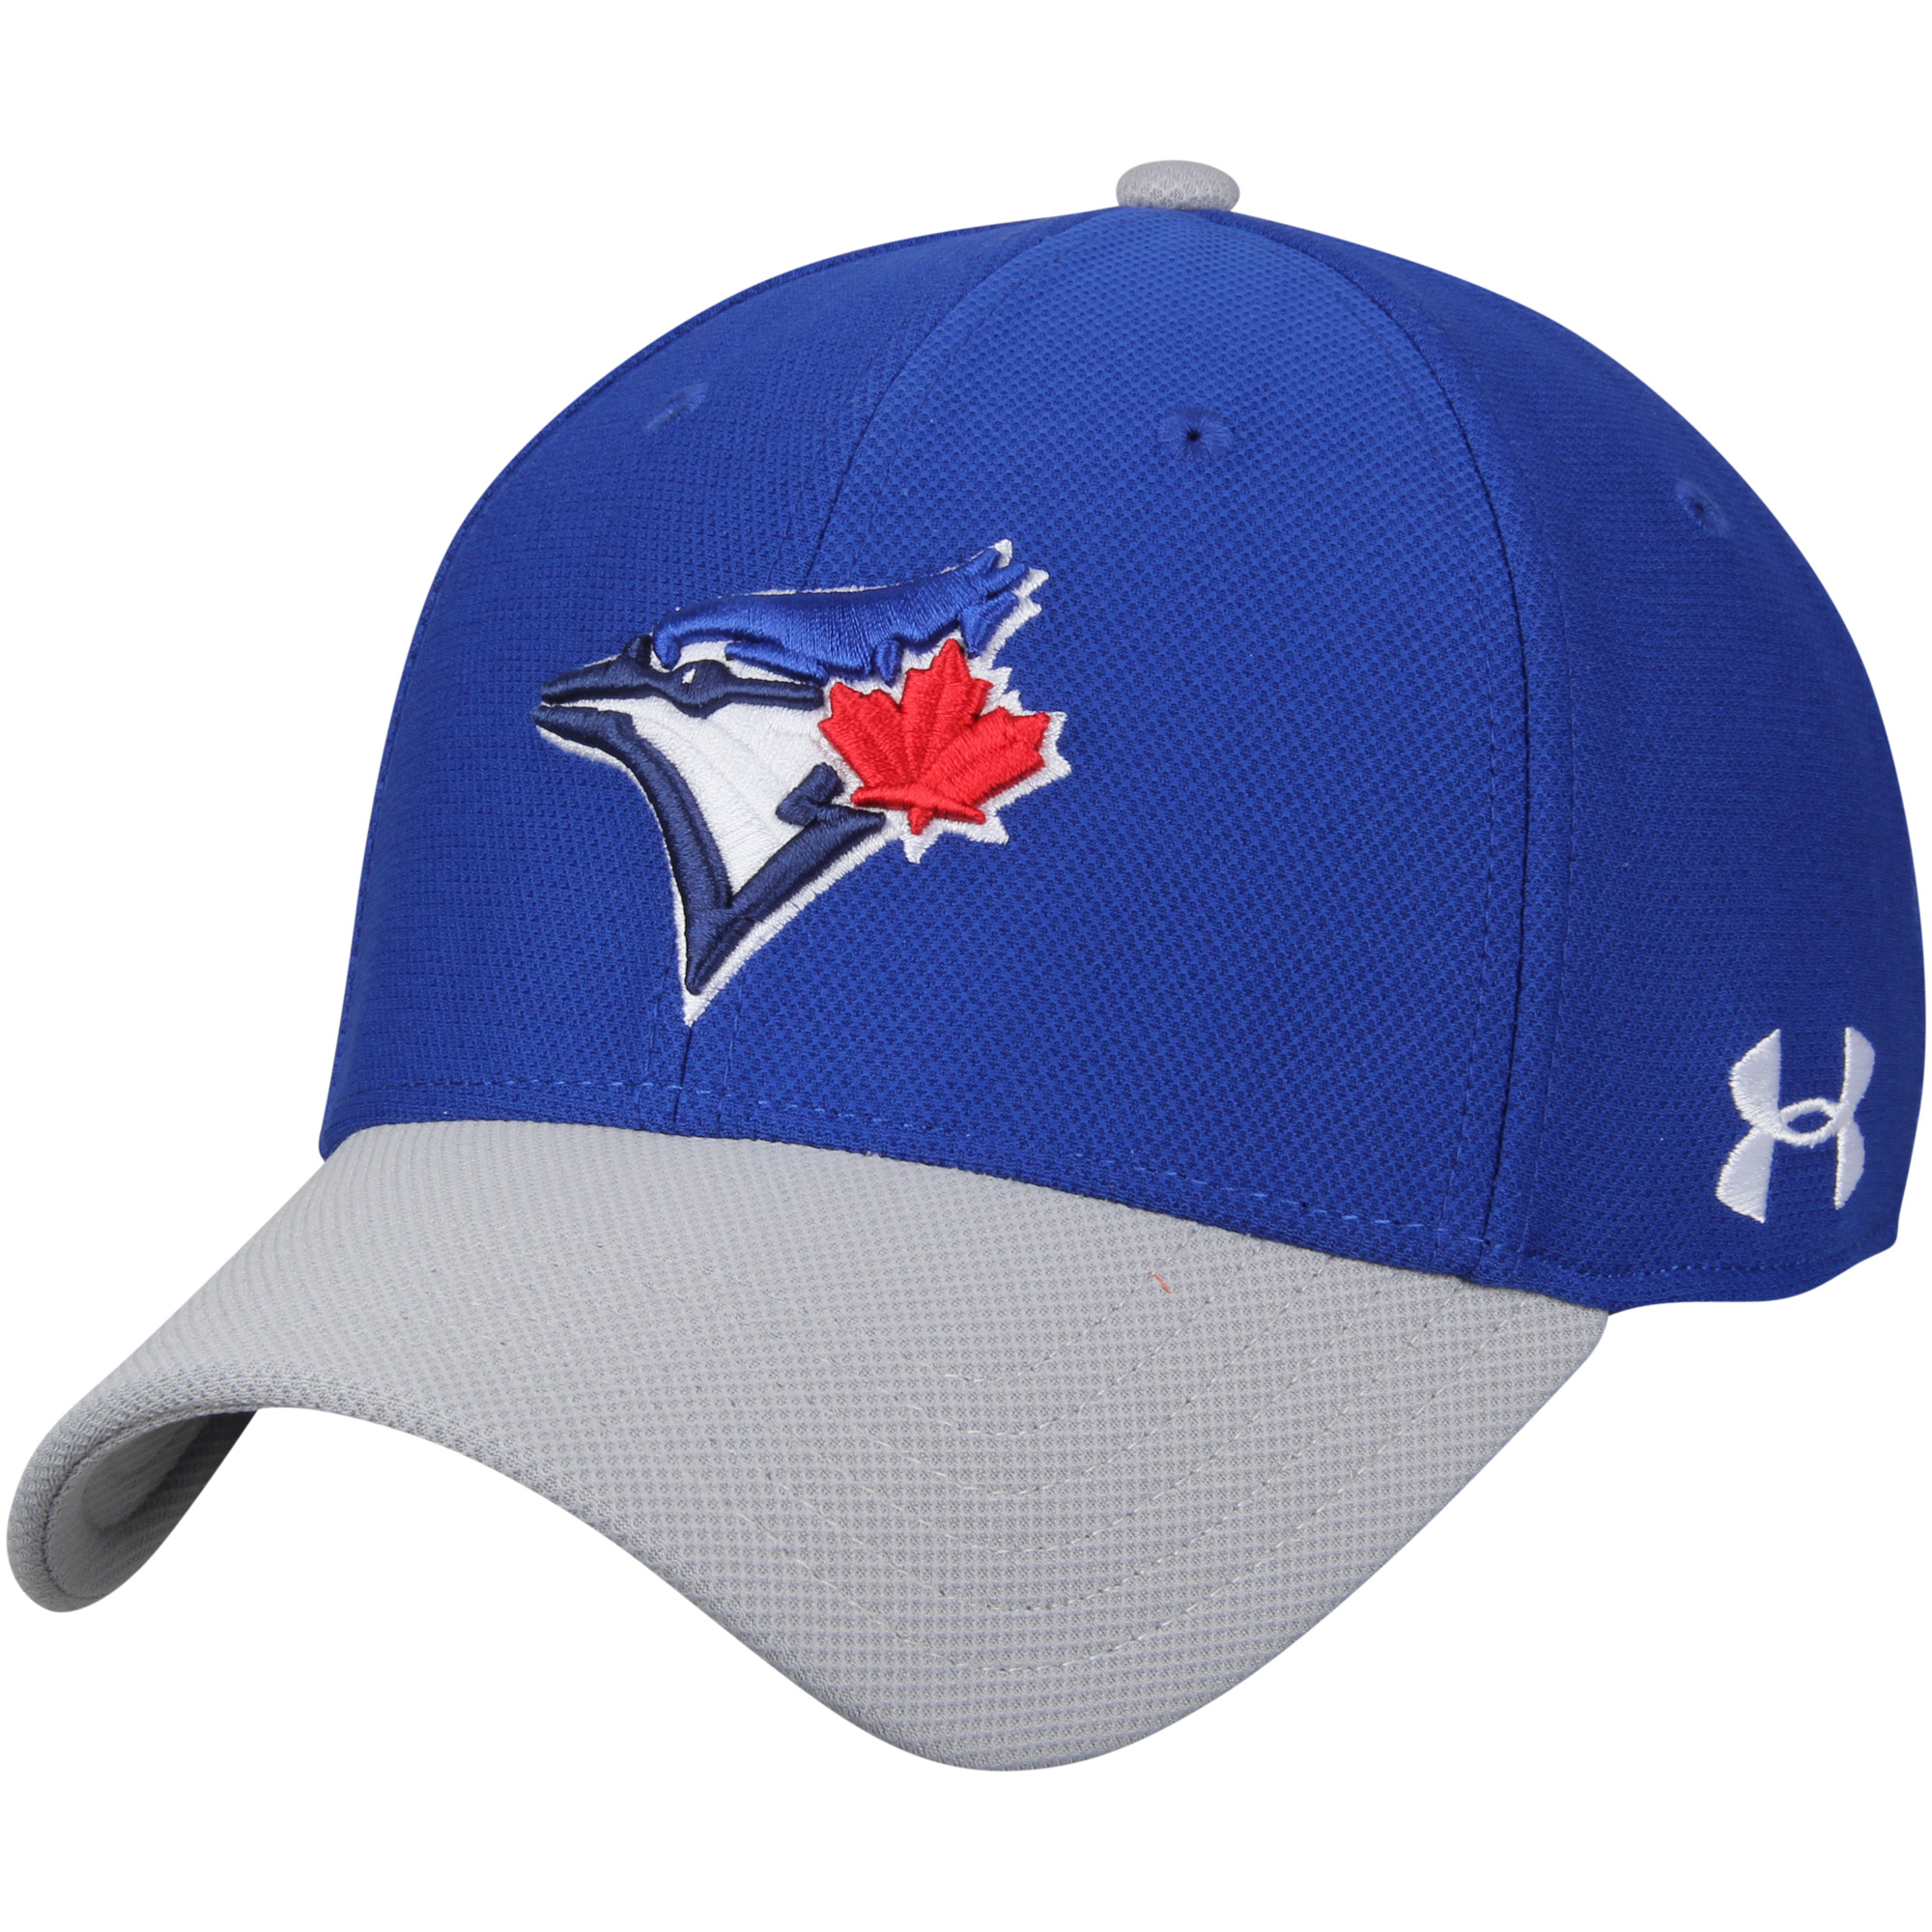 Toronto Blue Jays Under Armour Blitzing Performance Adjustable Hat - Royal/Gray - OSFA